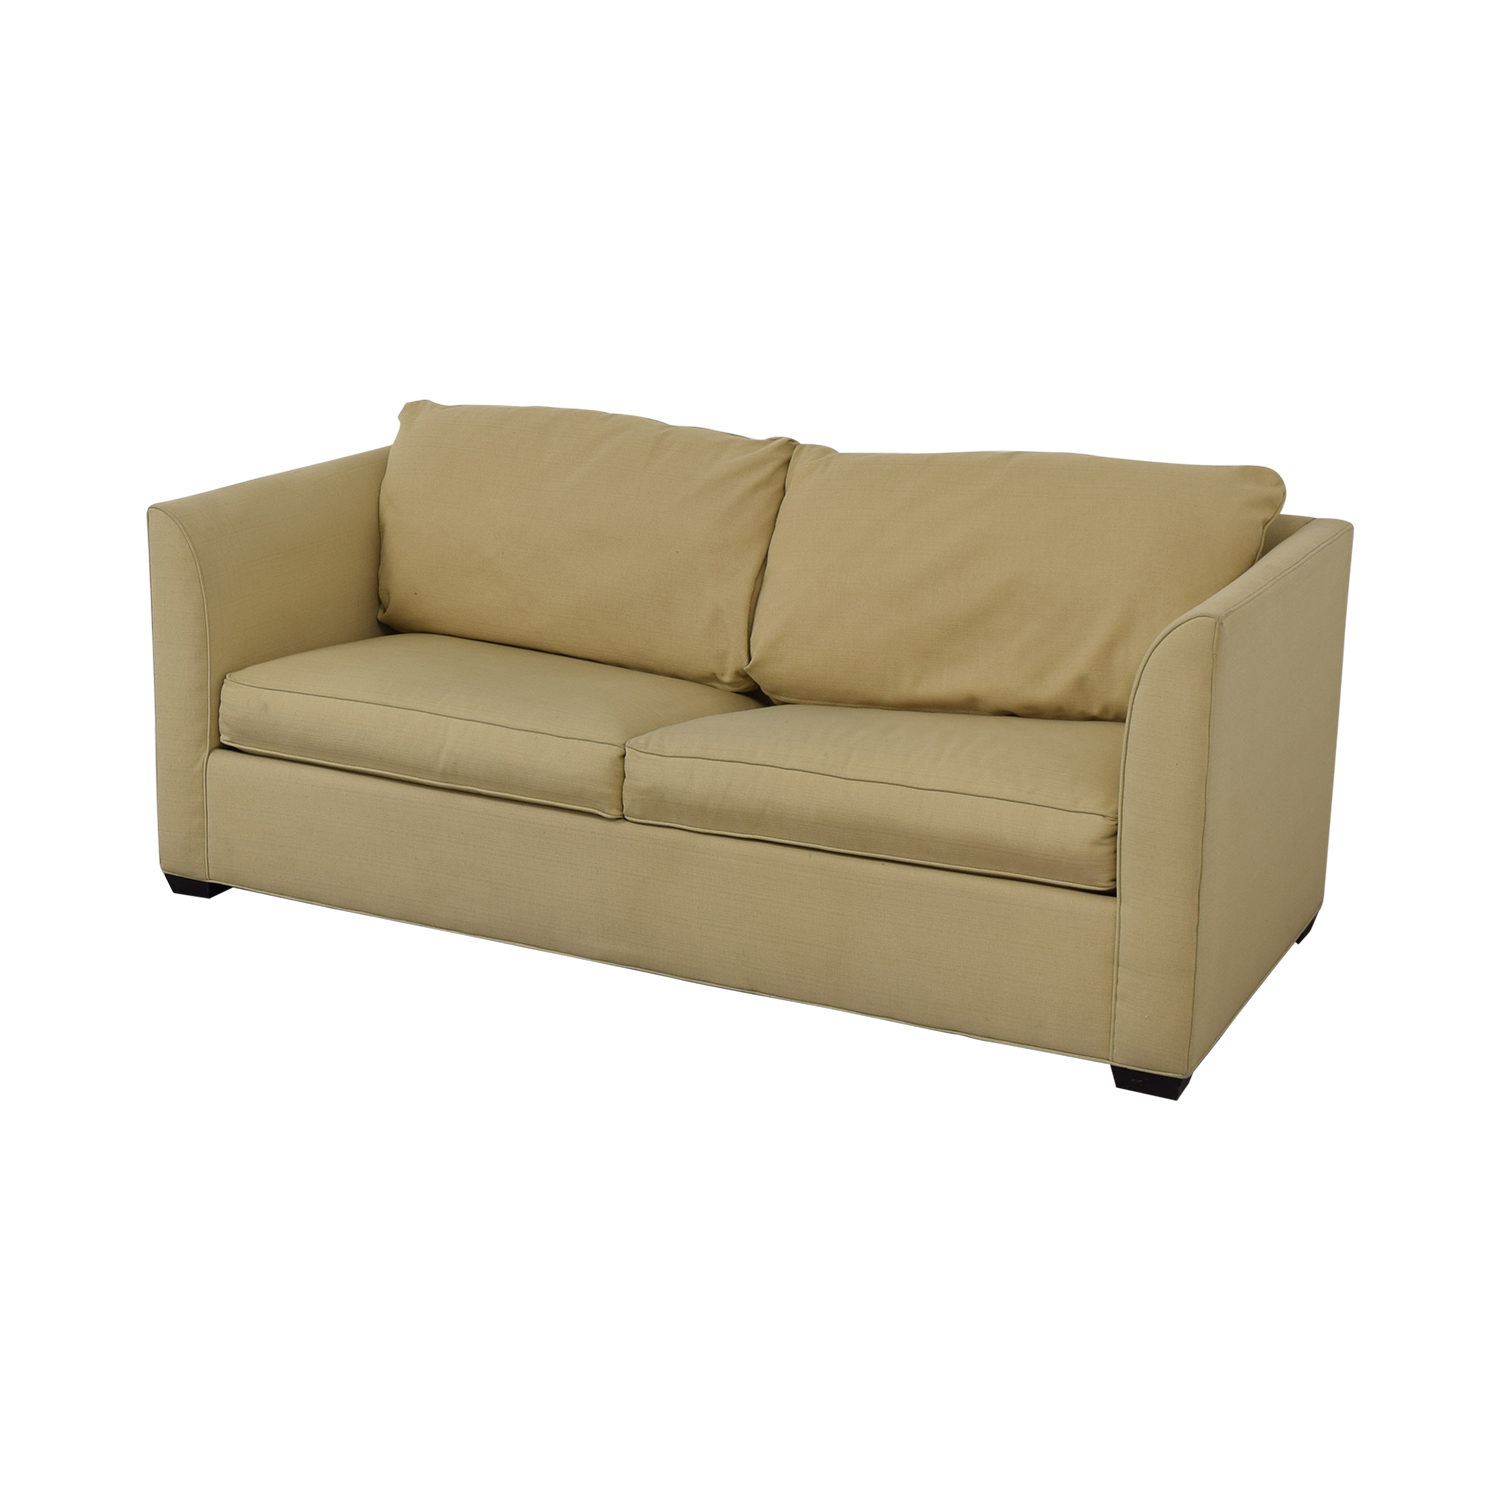 76% OFF - Room & Board Room & Board Modern Full Sleeper Sofa / Sofas